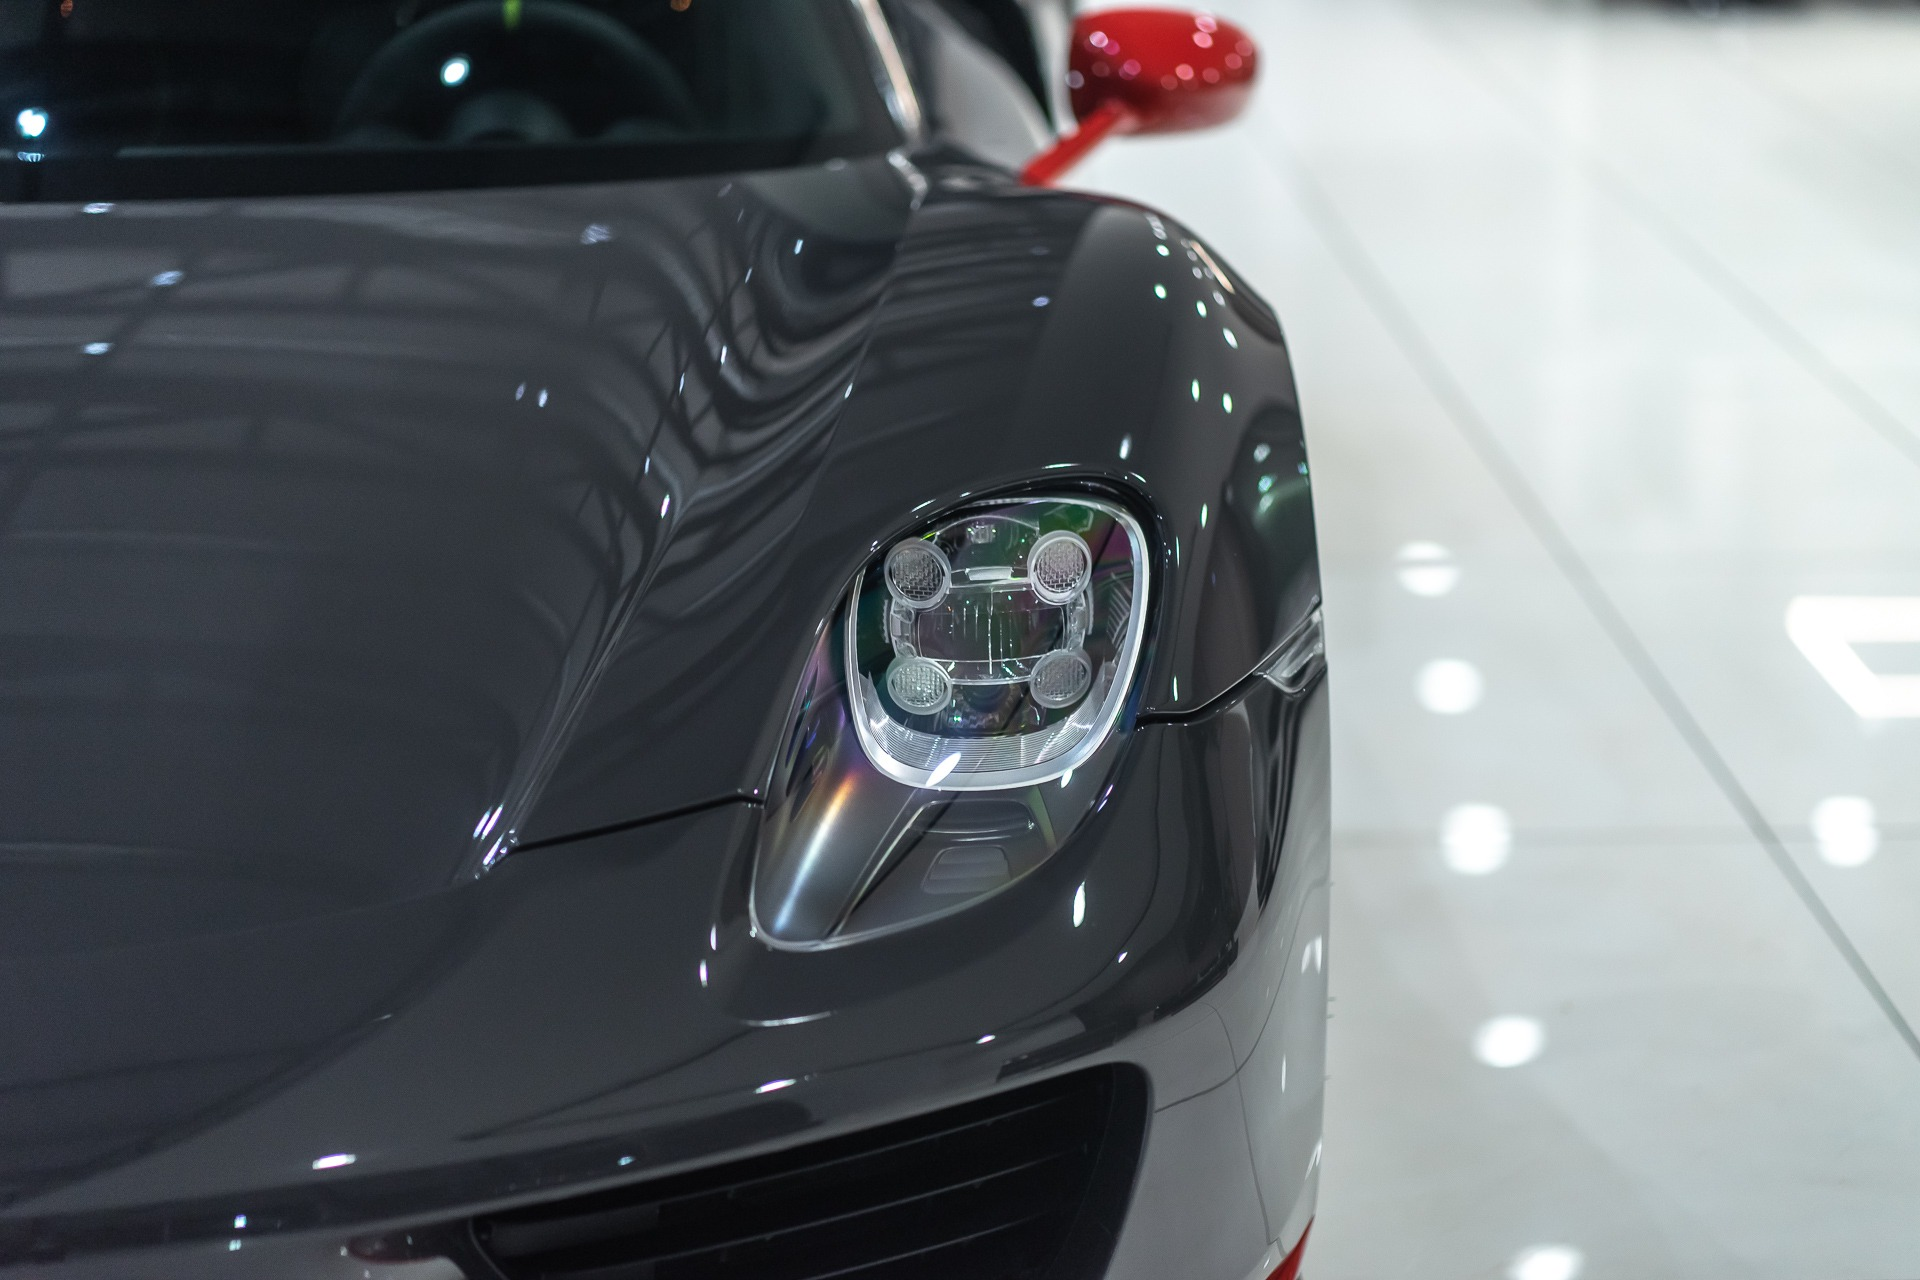 Used-2015-Porsche-918-Spyder-Weissach-PTS-Grey-Black-RARE-1-of-1